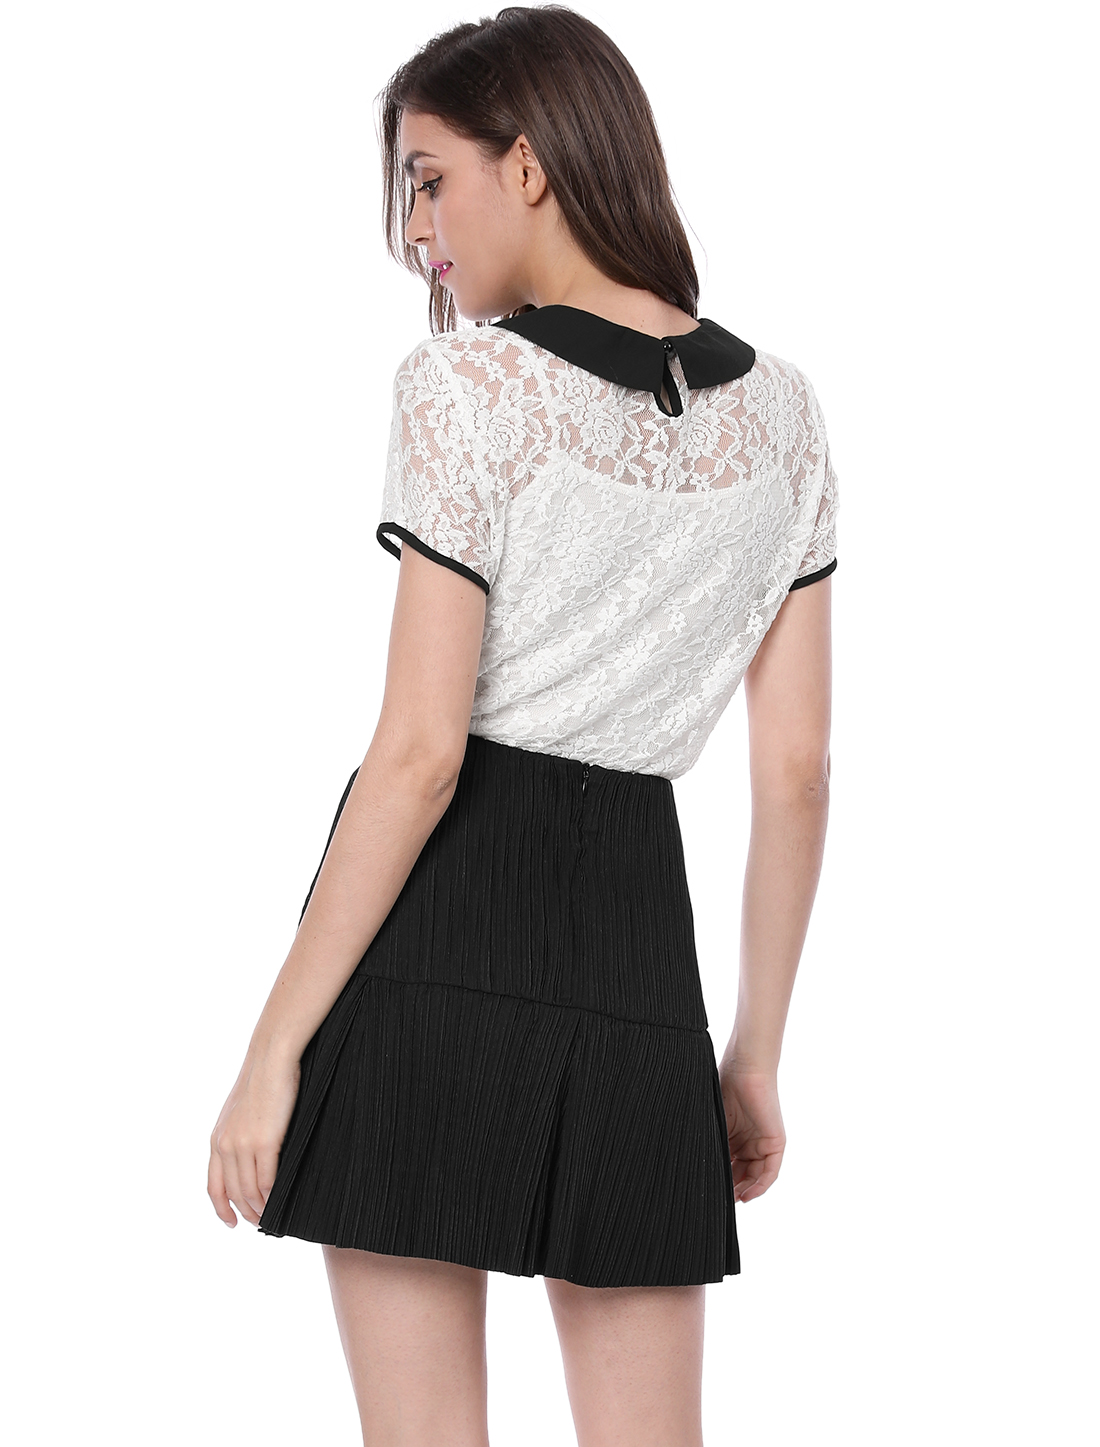 07f89c23ab7104 Allegra K Women See Through Contrast Peter Pan Collar Lace Top White S